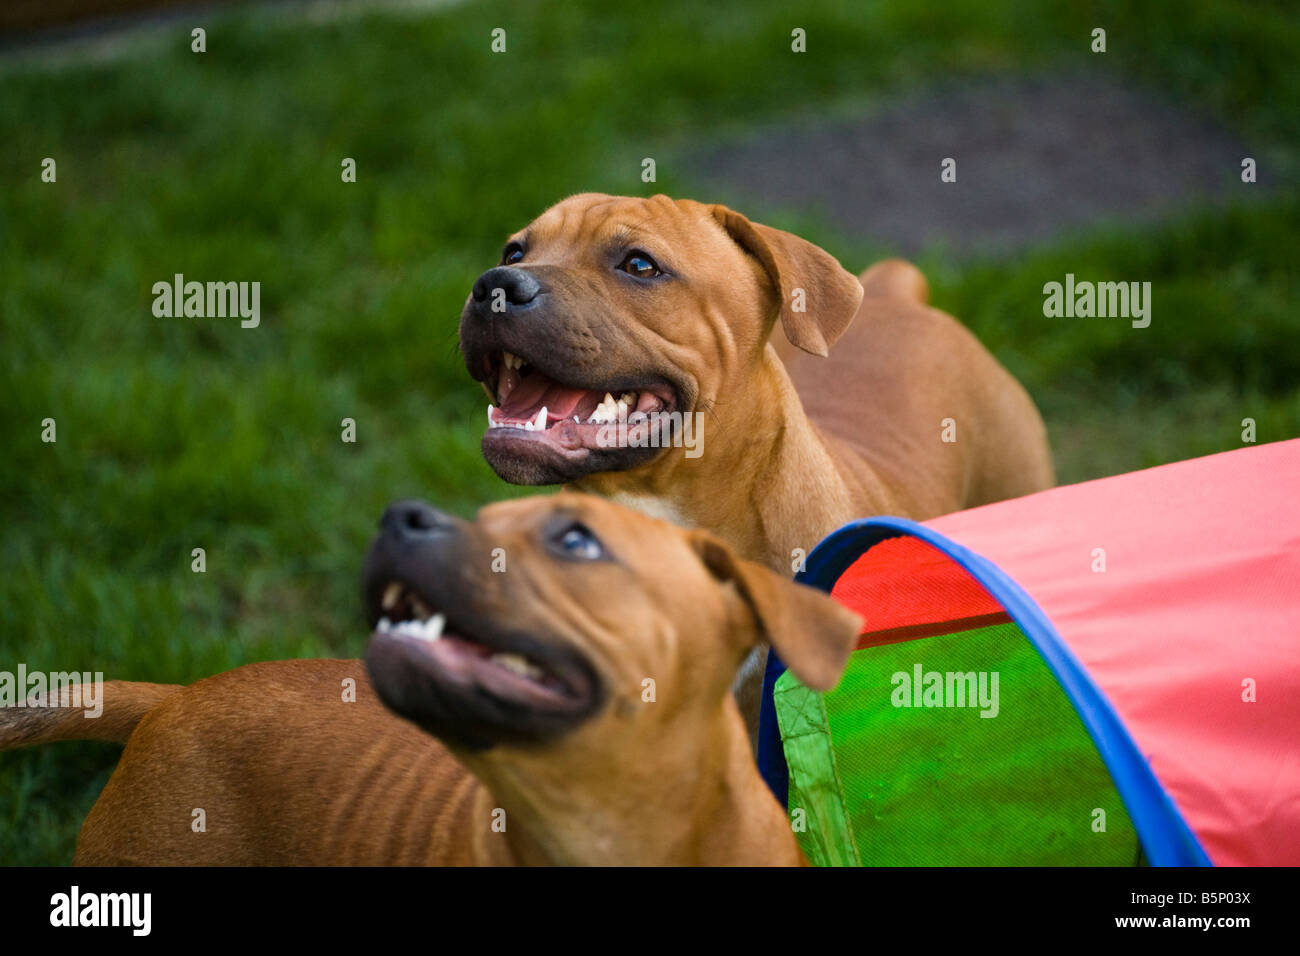 Two Staffies being distracted by their owner - Stock Image